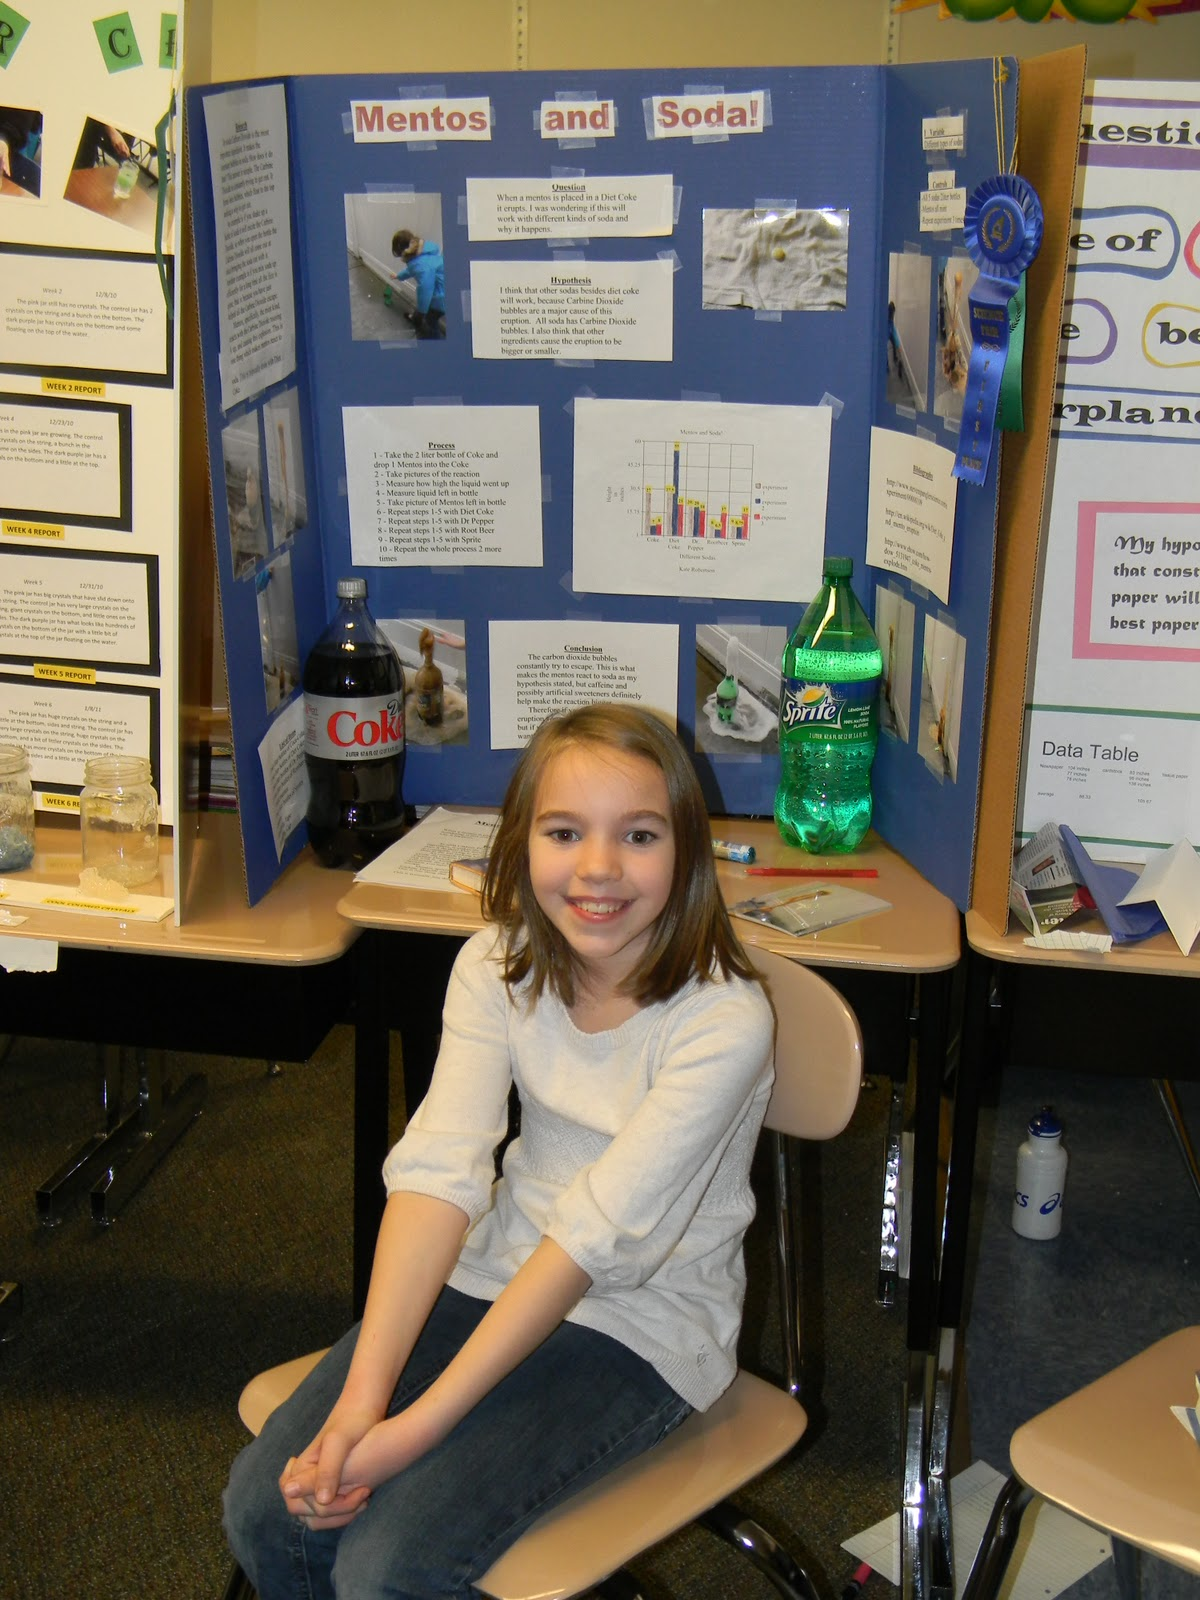 Science Fair Projects with Pop http://thoserobertsons.blogspot.com/2011_01_01_archive.html